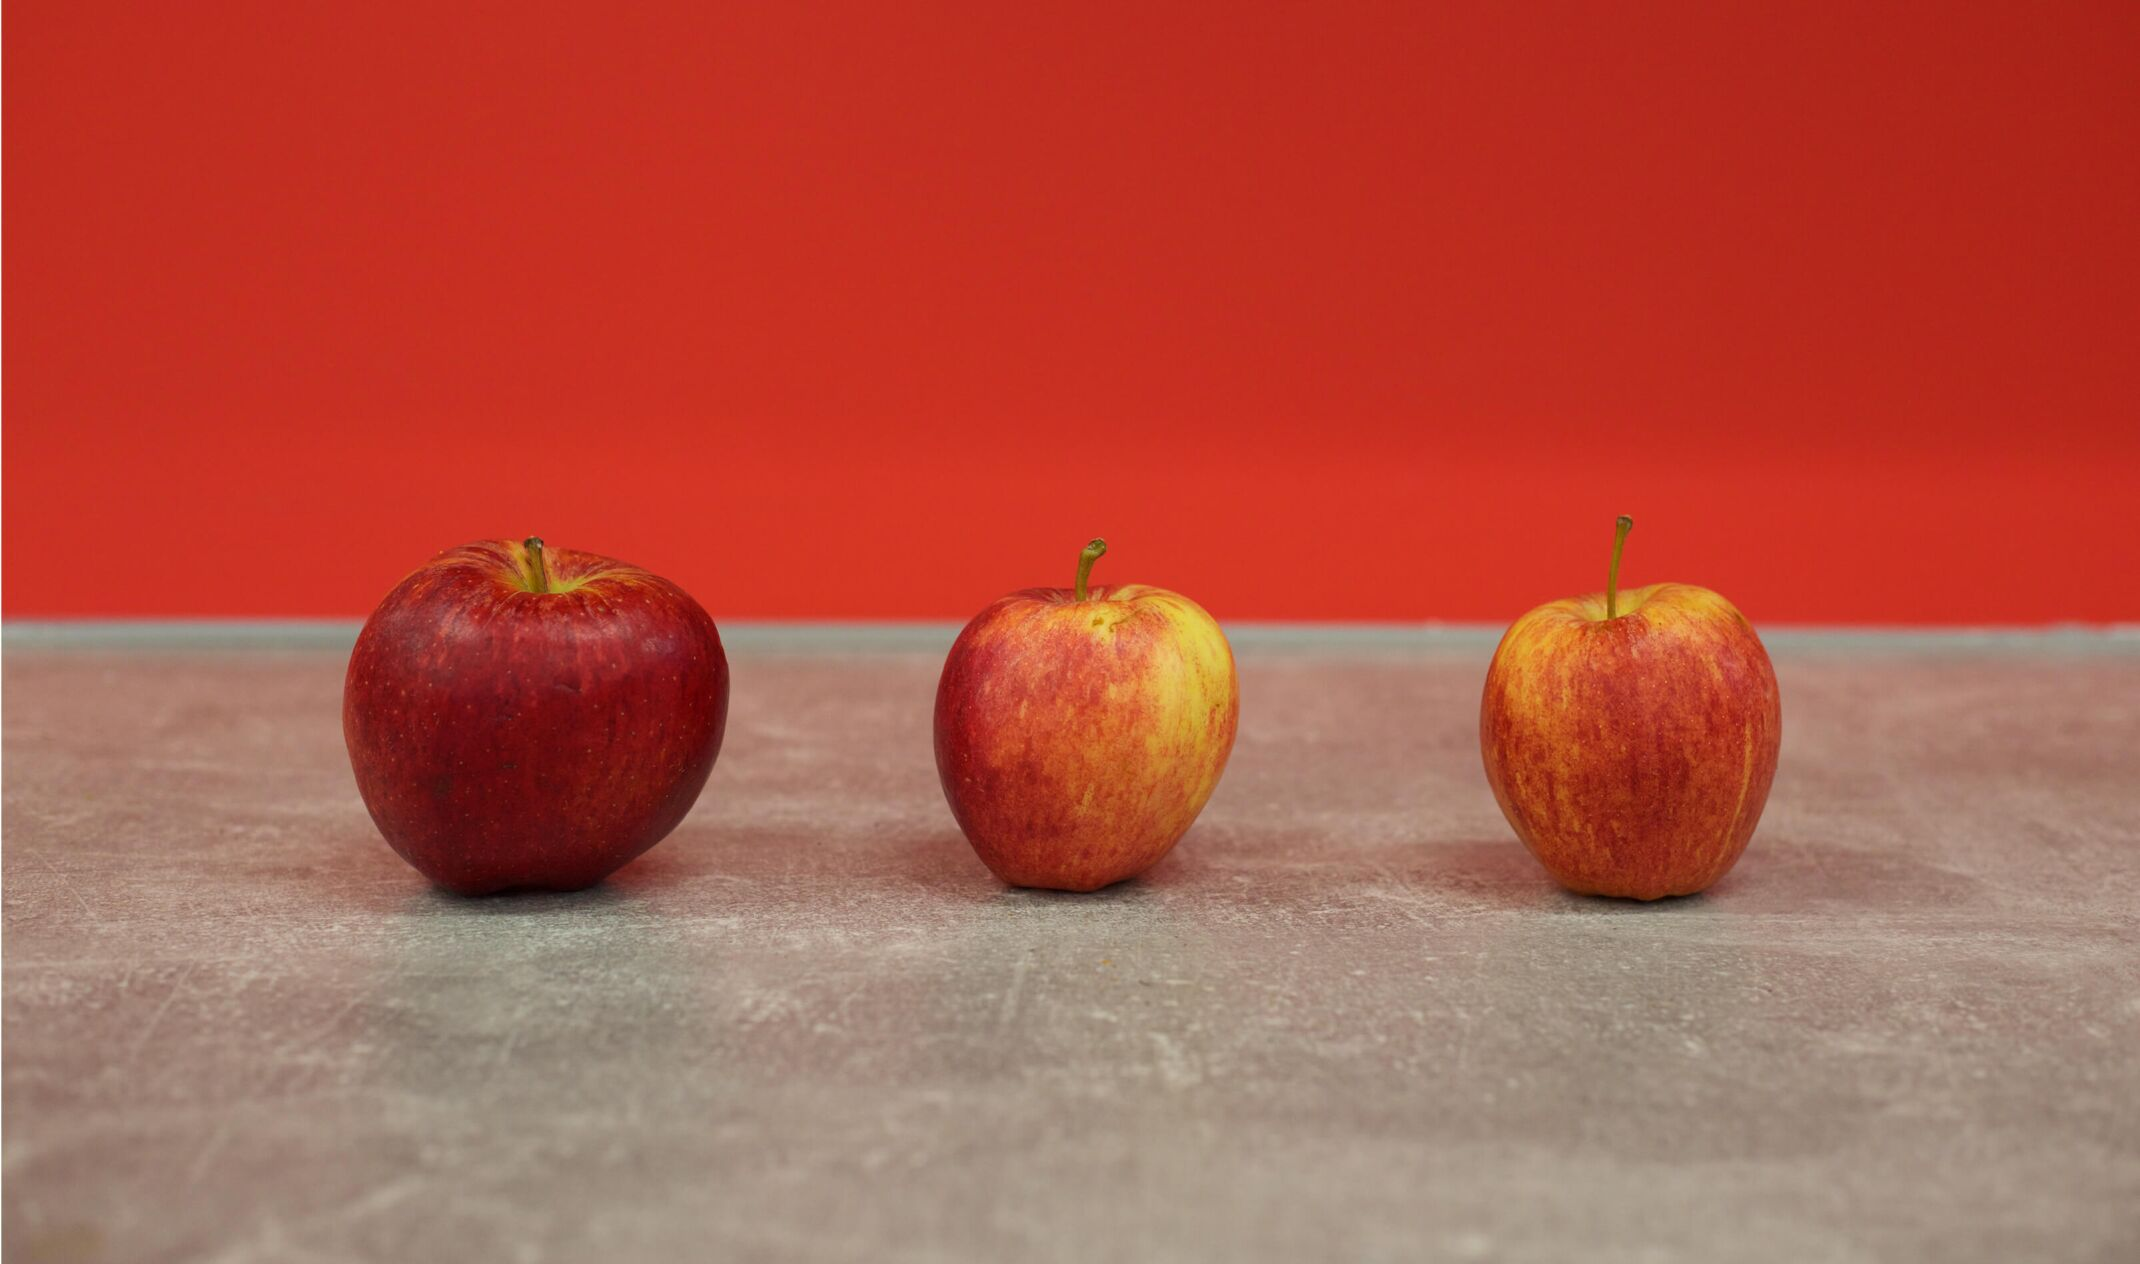 three apples on table against red wall